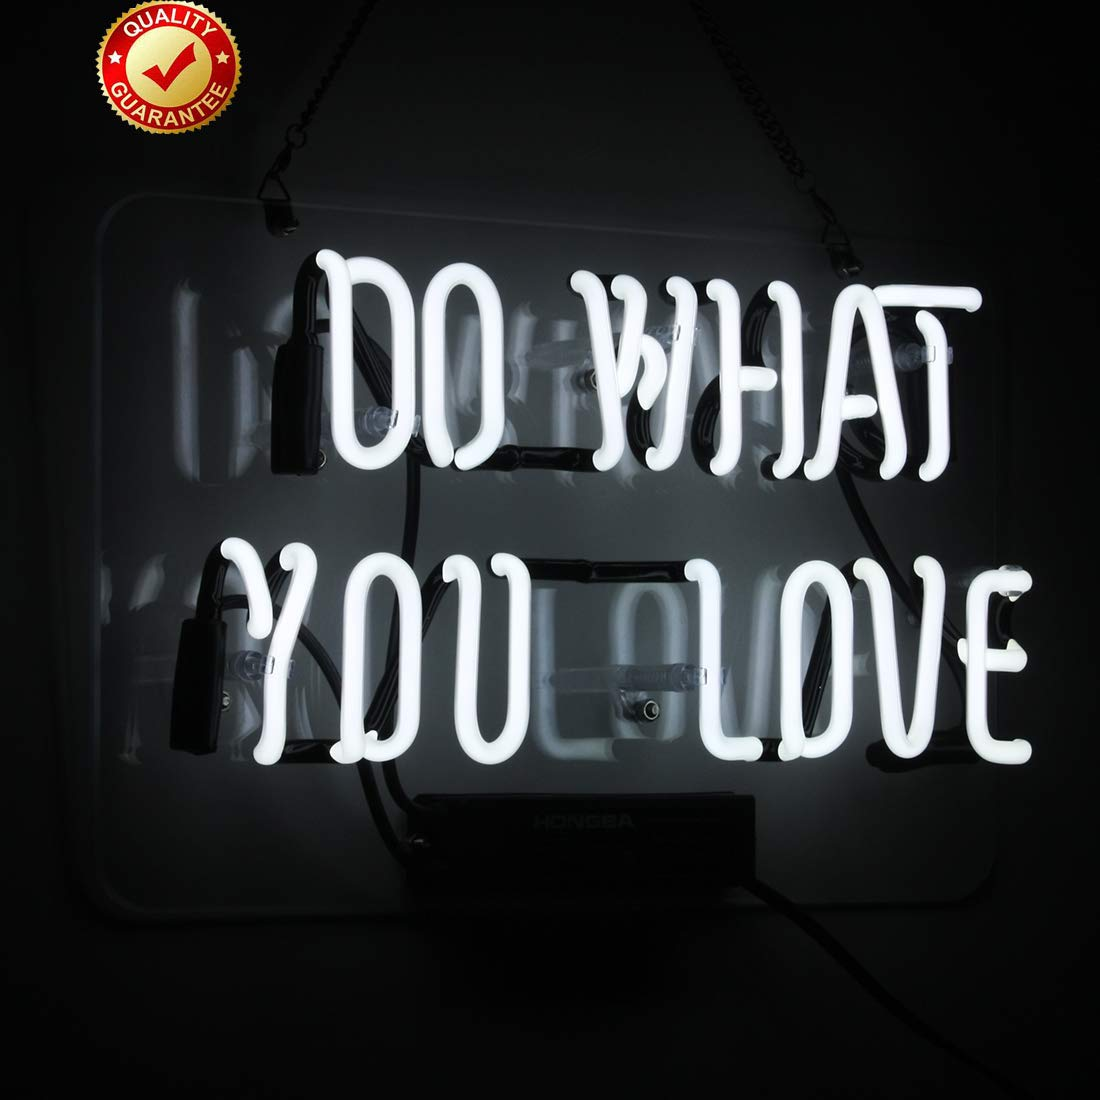 Neon Light Do What You Love Neon Sign Office Bedroom Christmas Party  Decorative Sign Ultra Bright Neon Night Light 14 x 9 Inch White - -  Amazon.com 7c0760c68db9